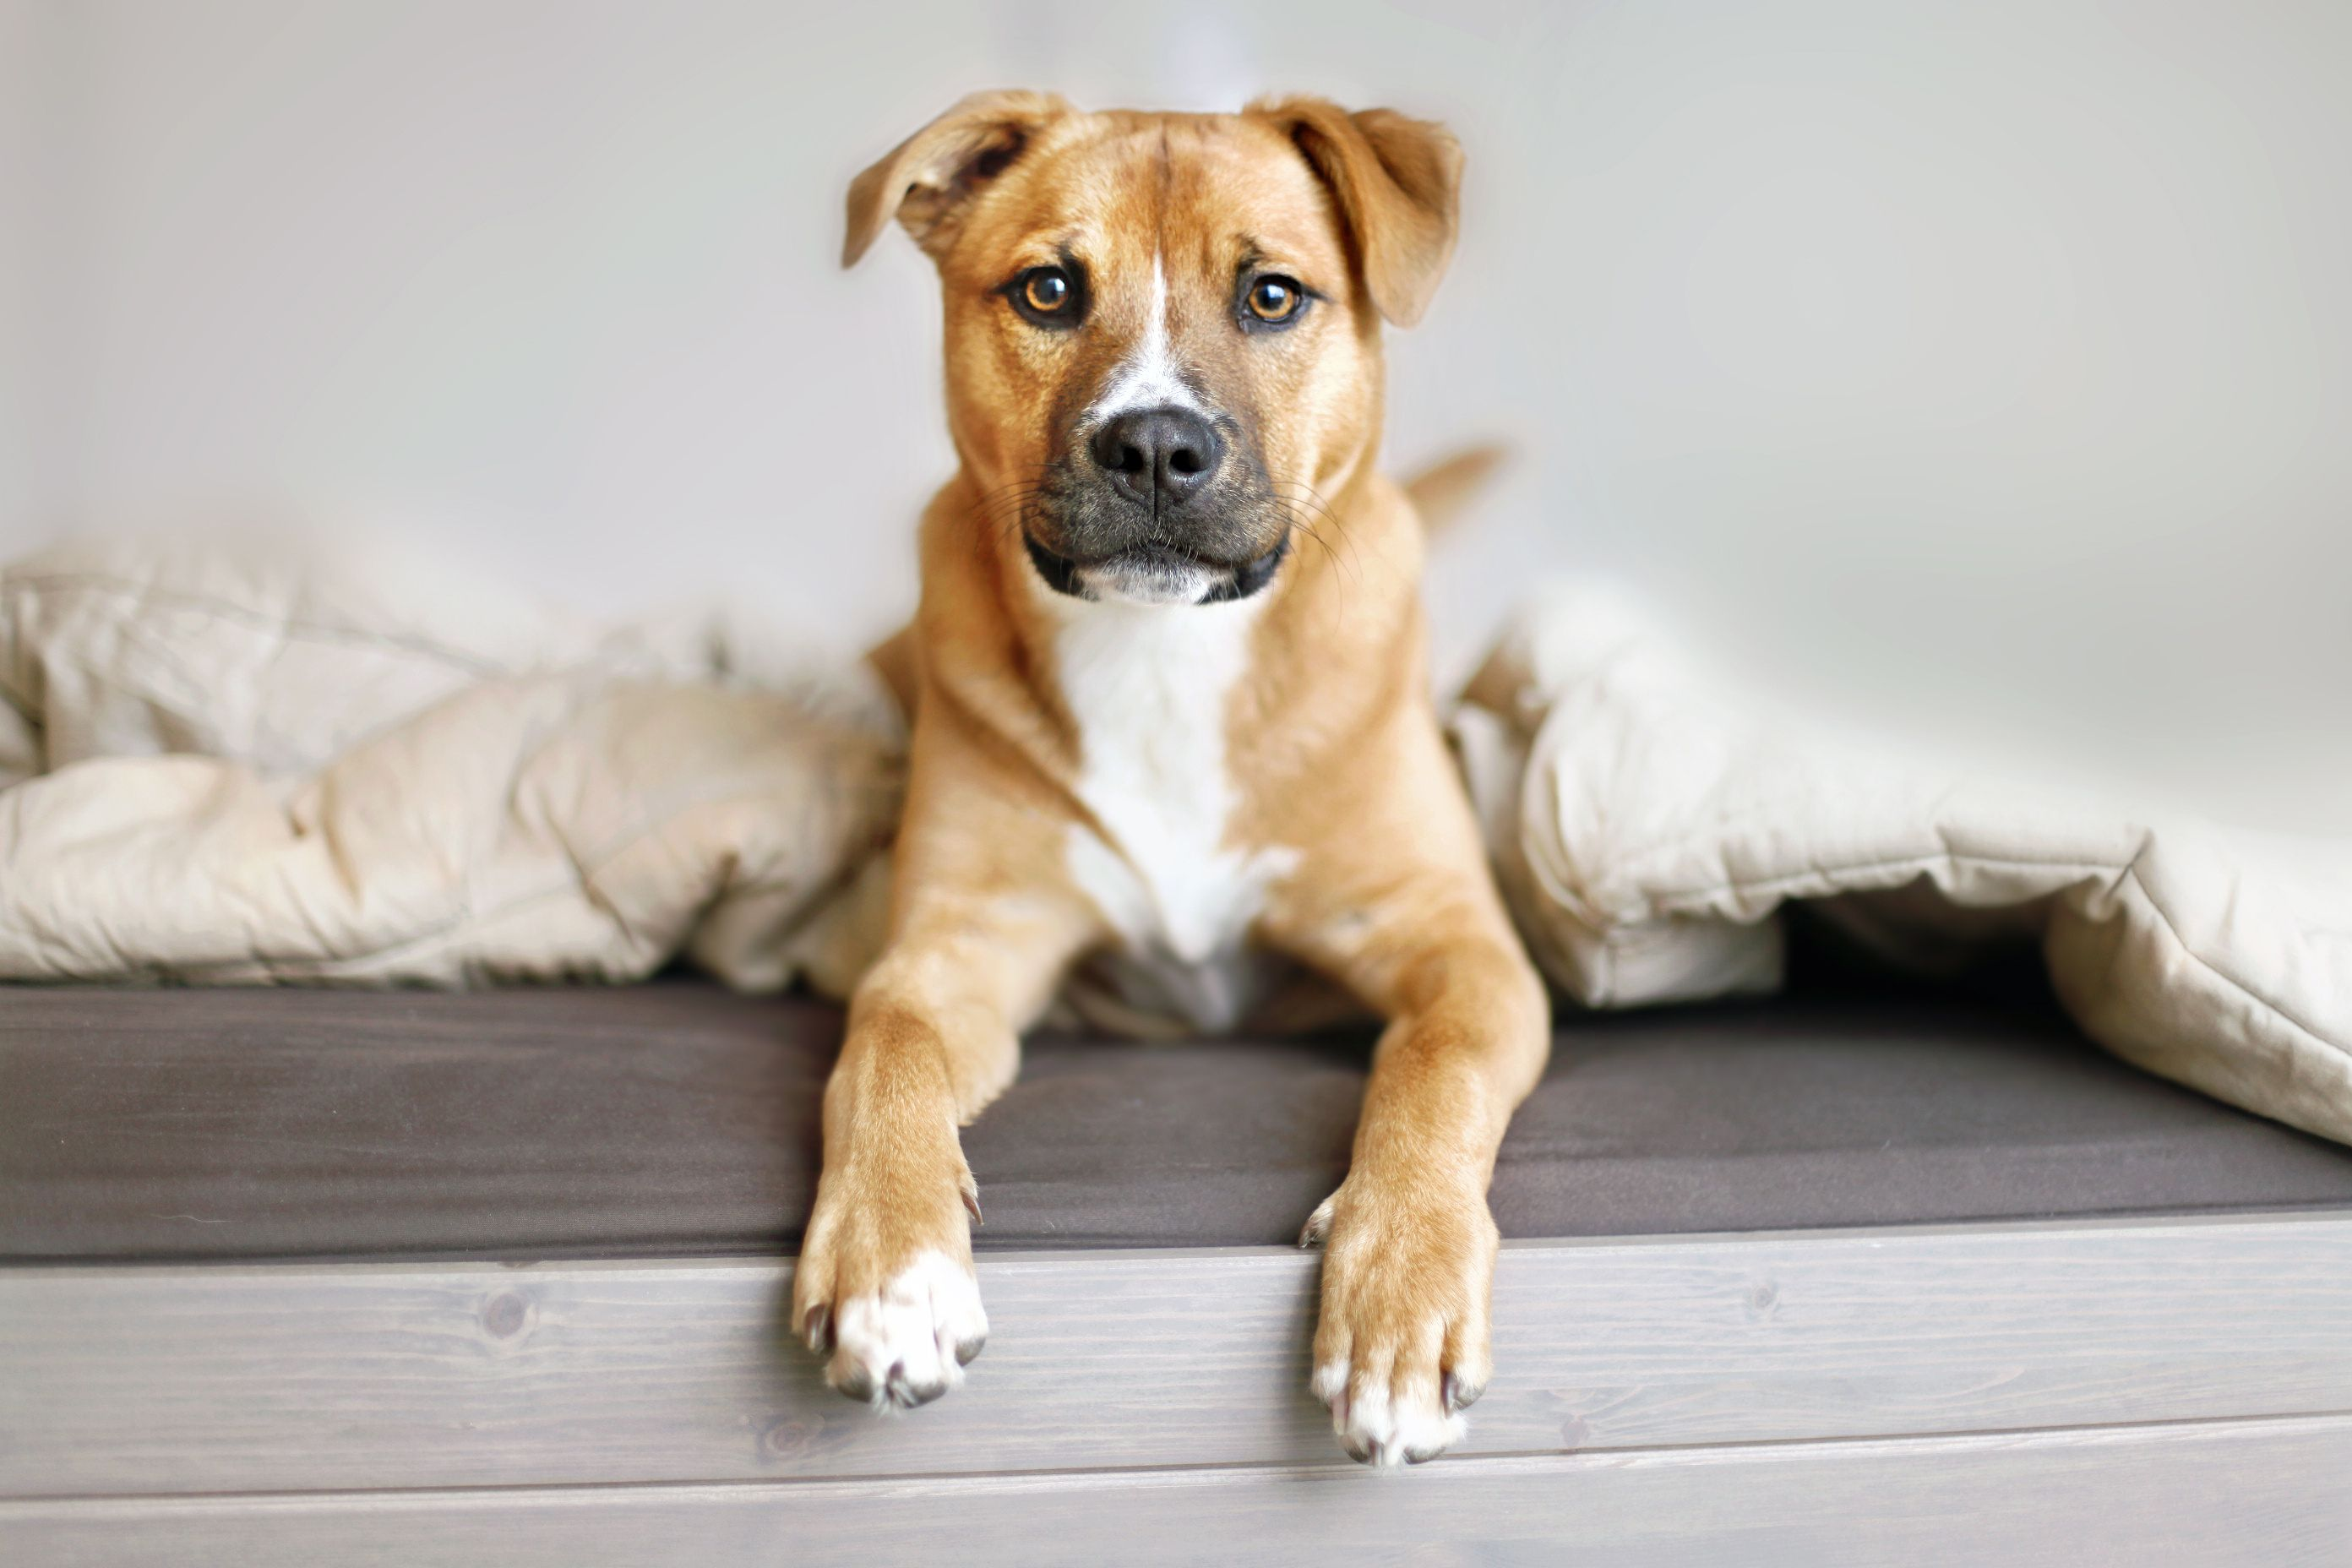 14 Best Short Haired Dogs For Your Family These Short Haired Dogs Are Adorable Family Friendly And Don T Ne In 2020 Mixed Breed Dogs Short Haired Dogs Mutt Puppies